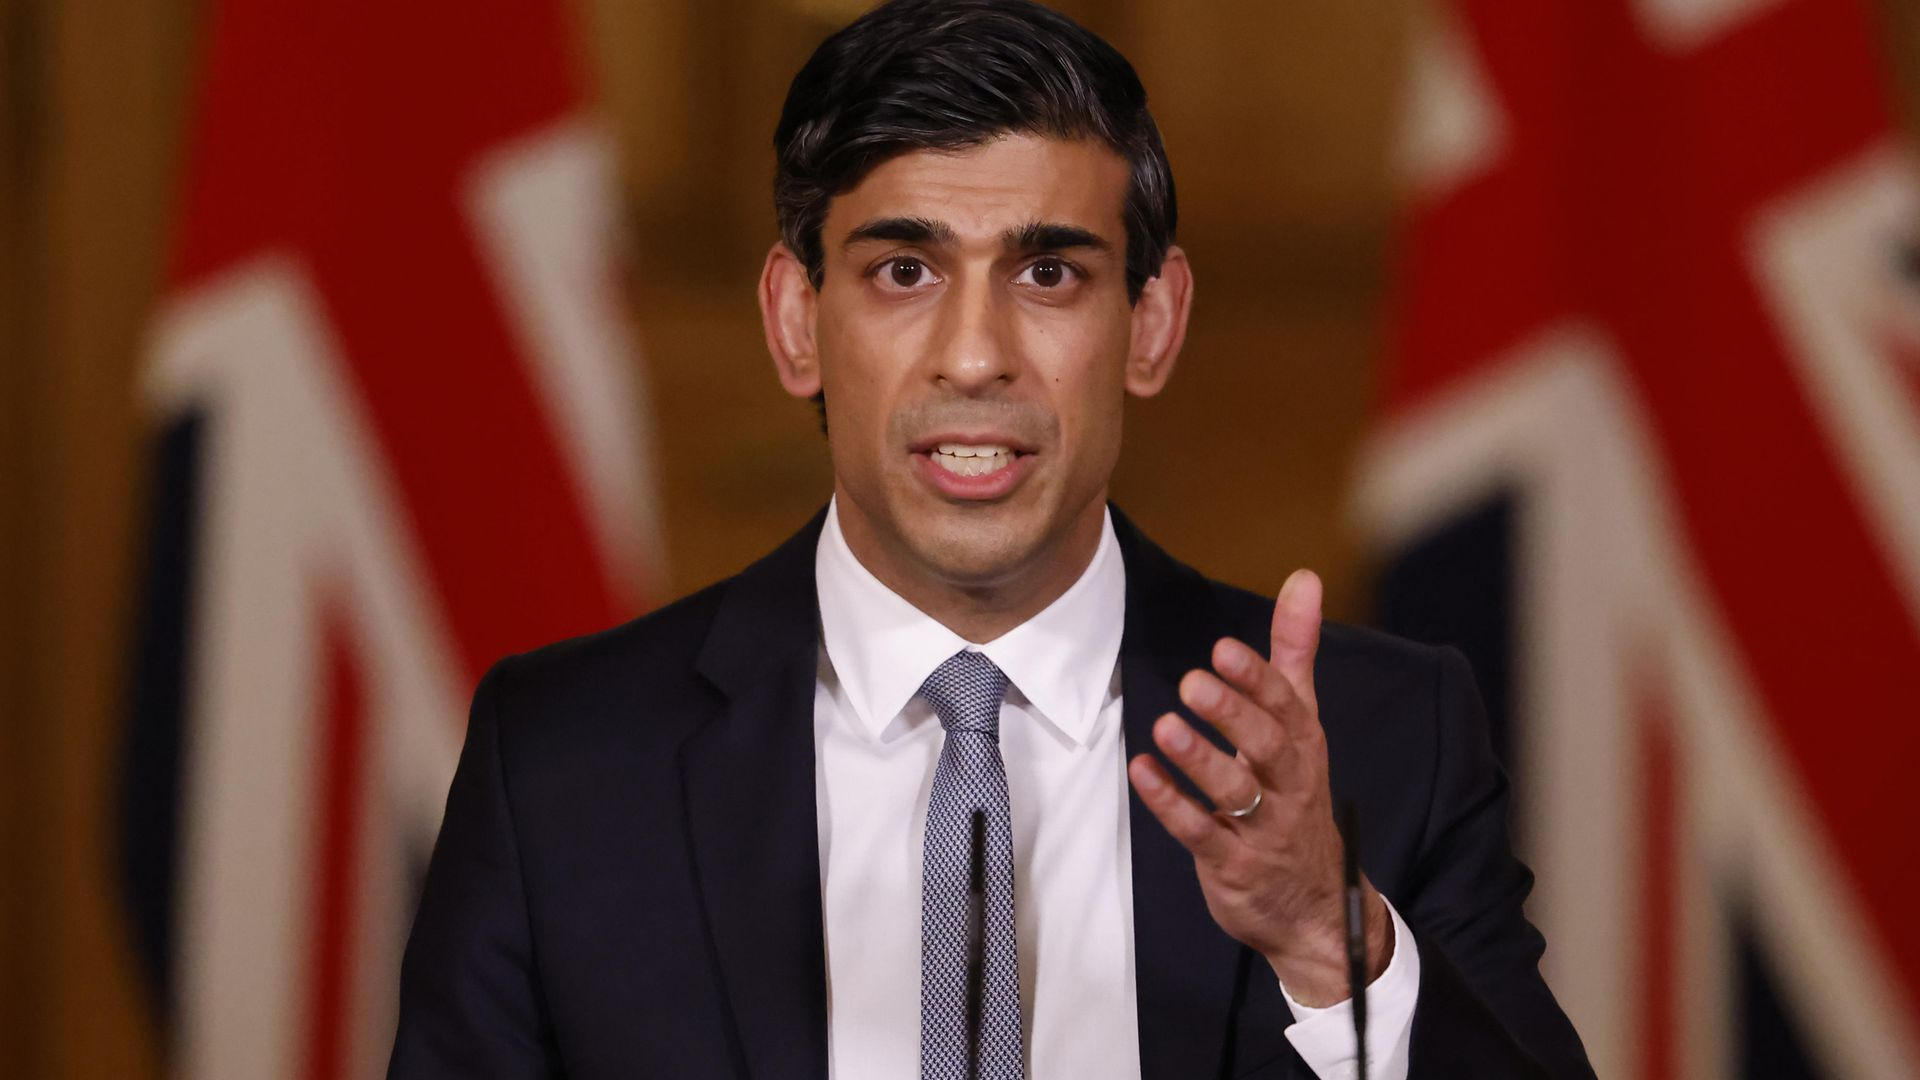 Chancellor of the Exchequer, Rishi Sunak during a press conference in 10 Downing Street, London, following the 2021 Budget in the House of Commons - Credit: PA